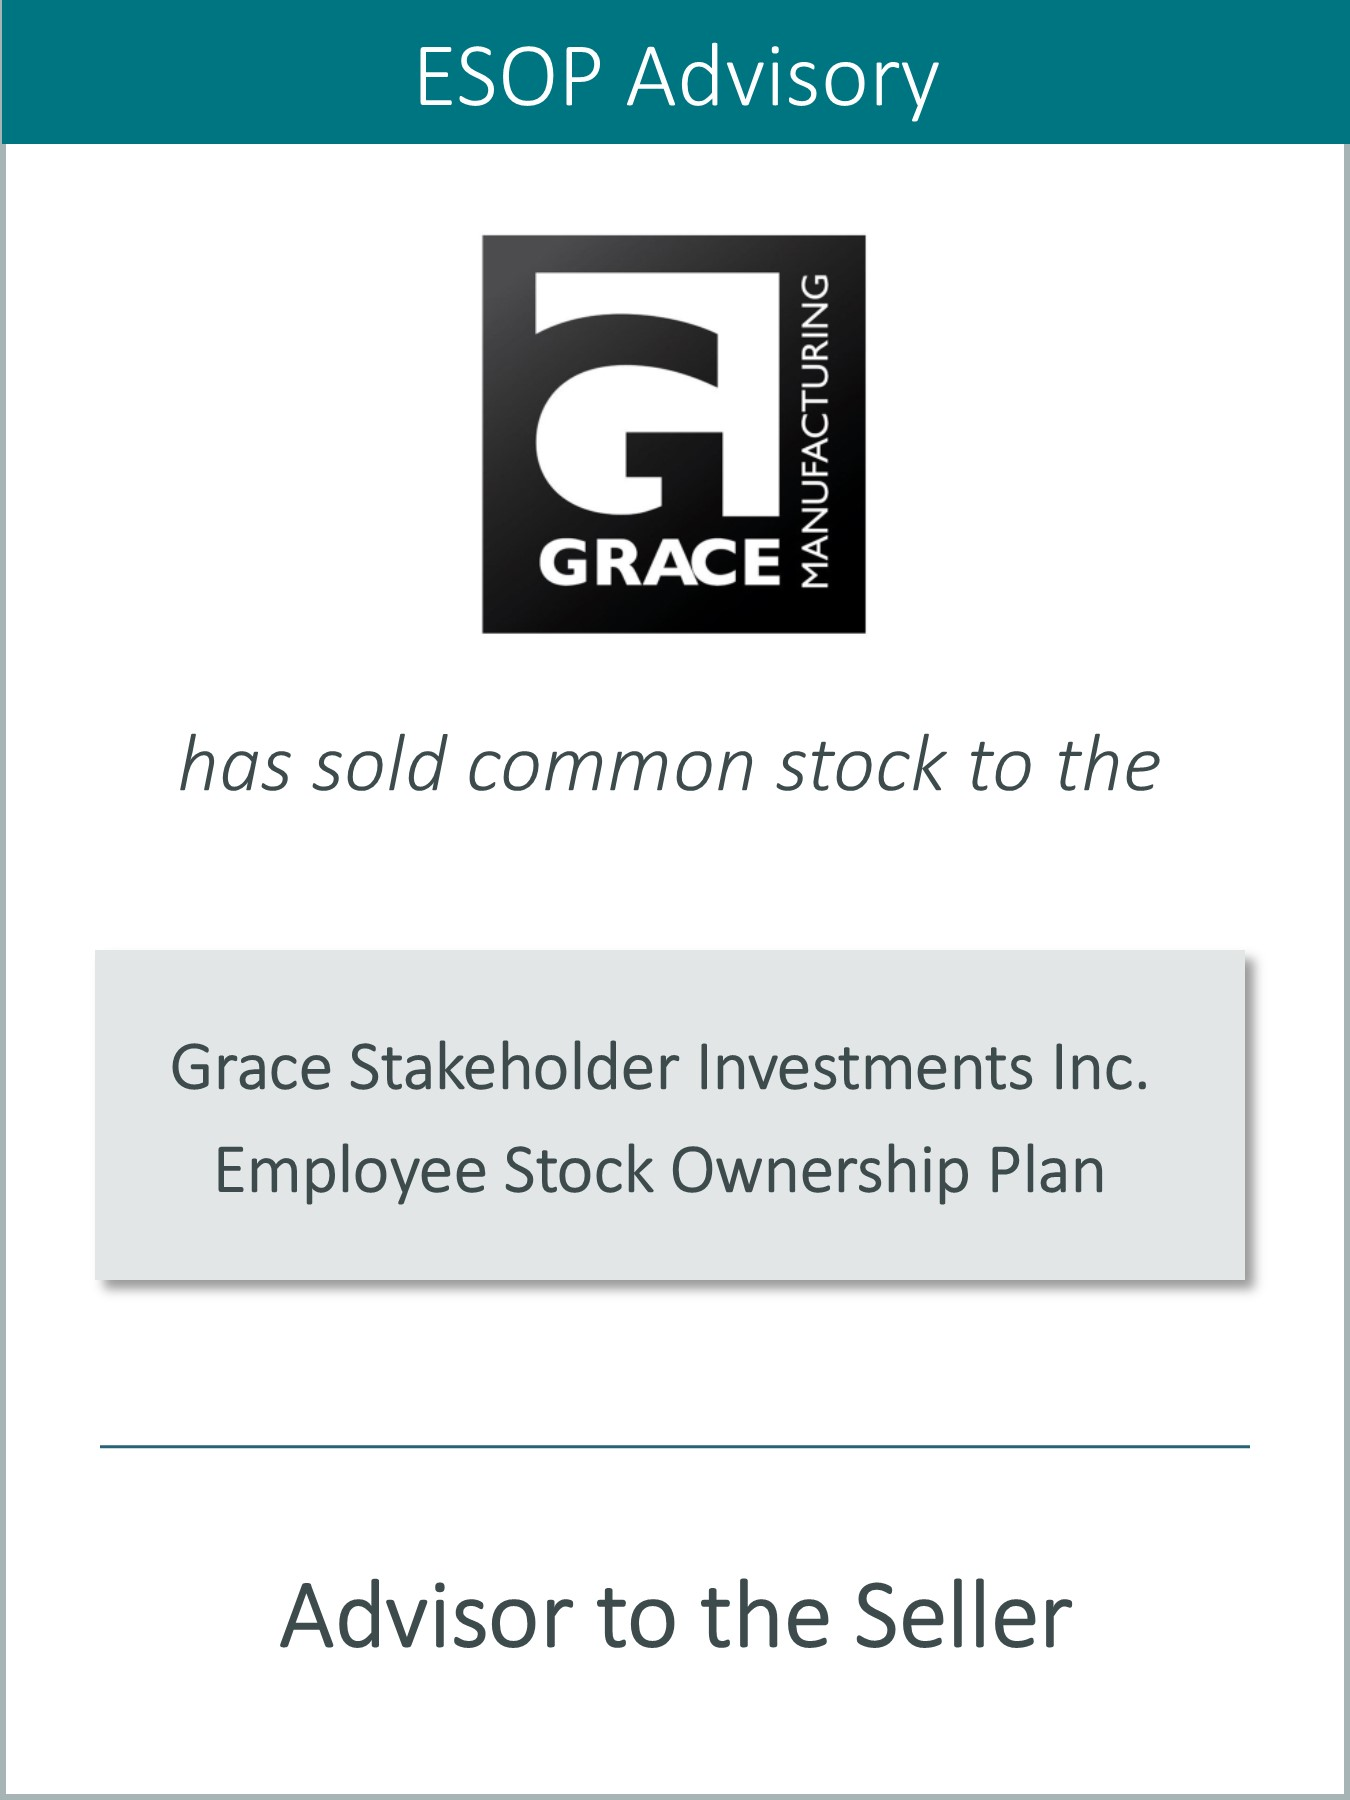 PRAIRIE IS PLEASED TO ANNOUNCE THE SALE OF GRACE MANUFACTURING TO AN ESOP